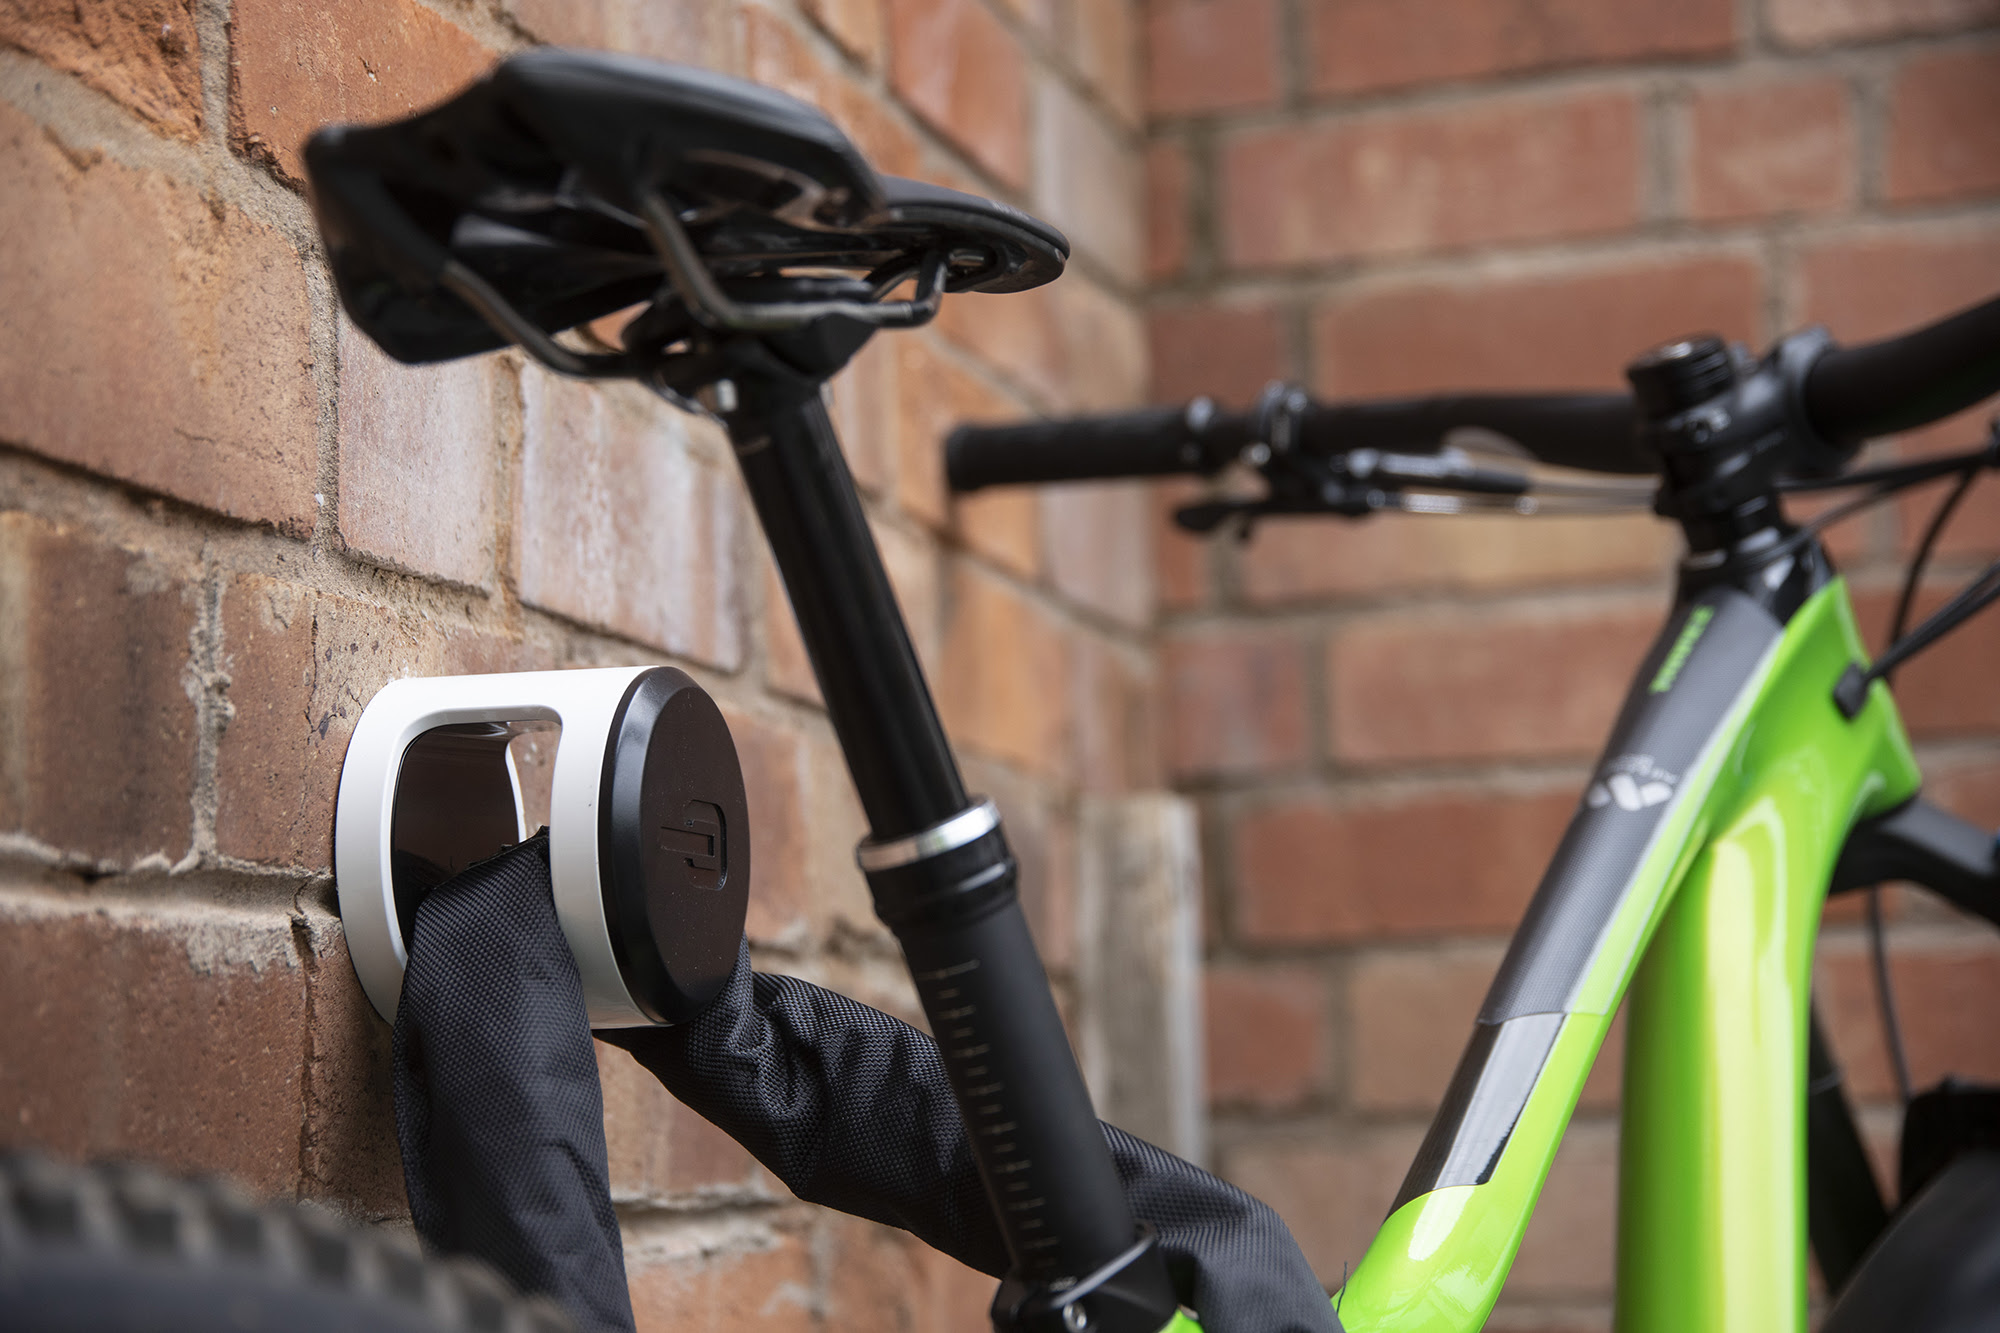 Hiplok Launches ANKR As Part Of Secure Bike Storage Line